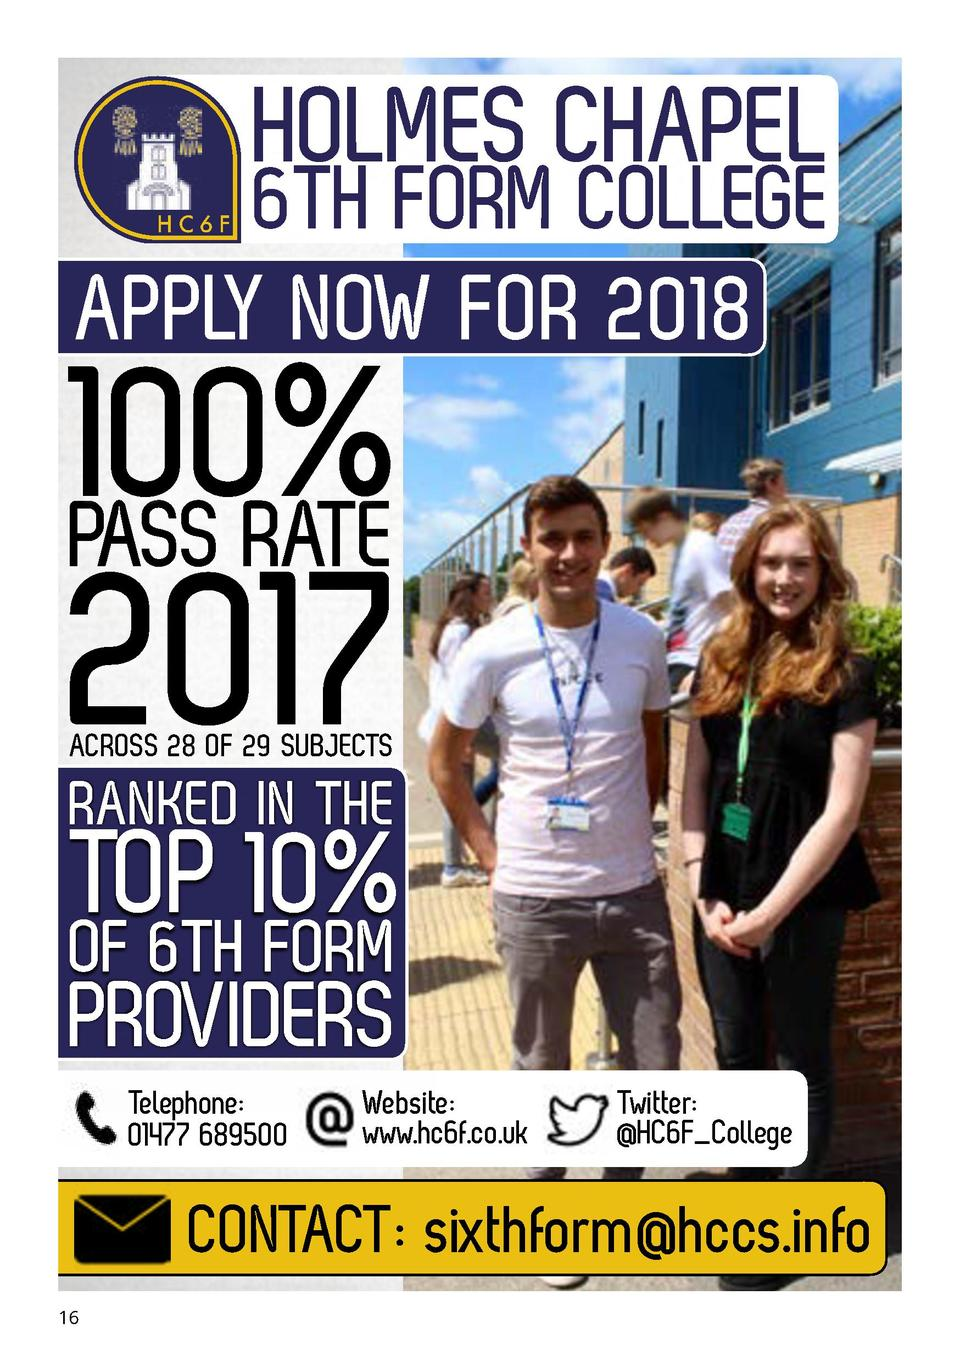 HOLMES CHAPEL  6TH FORM COLLEGE APPLY NOW FOR 2018 HC6F  100  PASS RATE  2017     ACROSS 28 OF 29 SUBJECTS  RANKED IN THE ...